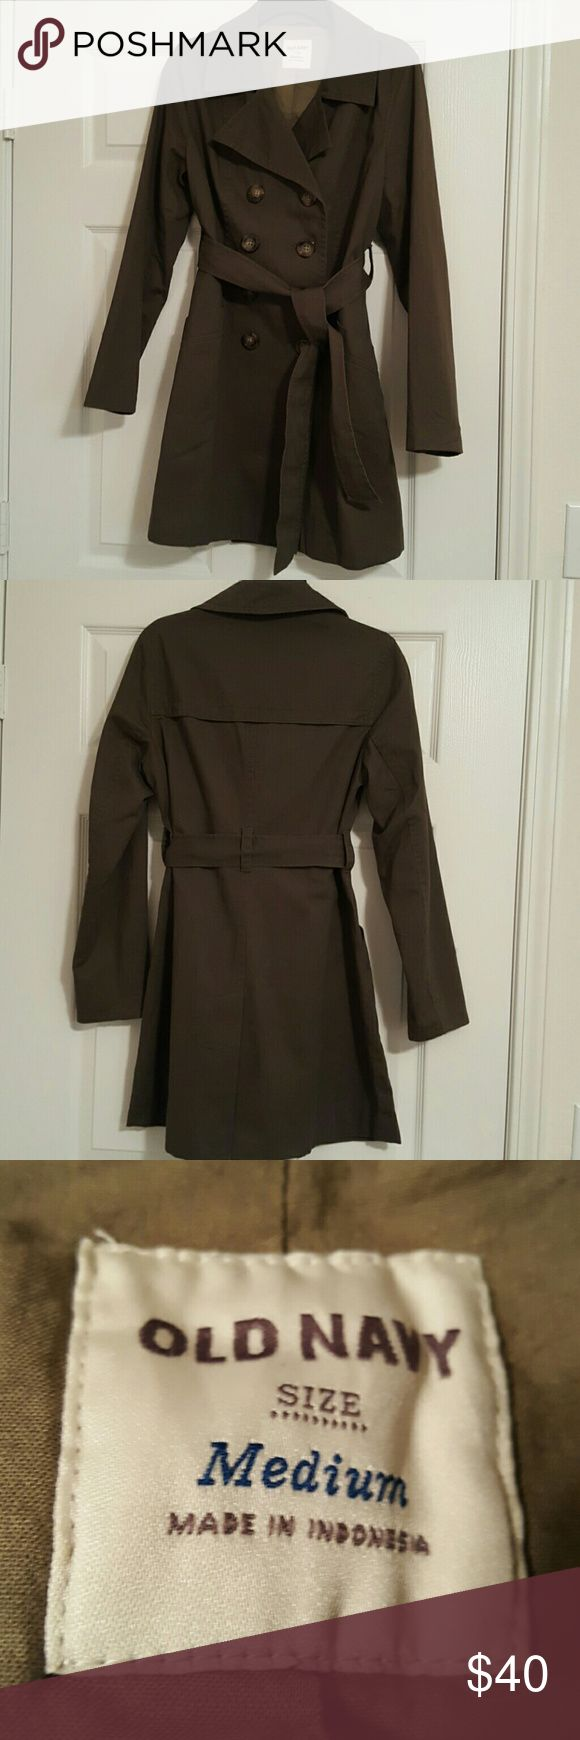 Old Navy Olive Green Lightweight Trench Coat Double breasted with green and brown buttons. Lined. Only worn once. Old Navy Jackets & Coats Trench Coats